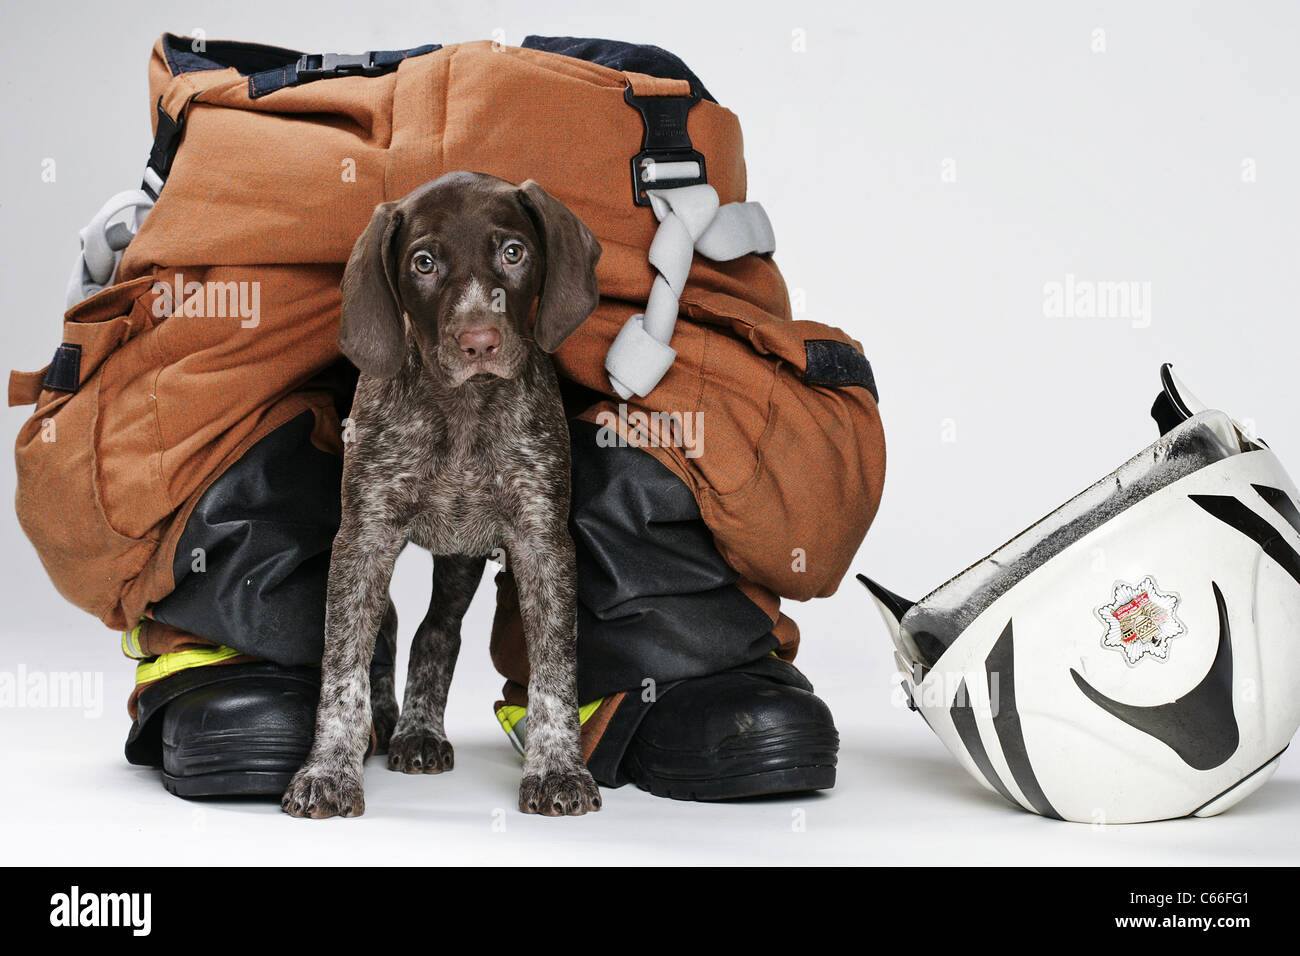 New Fire Service Investigation Puppy at 8 weeks old . - Stock Image